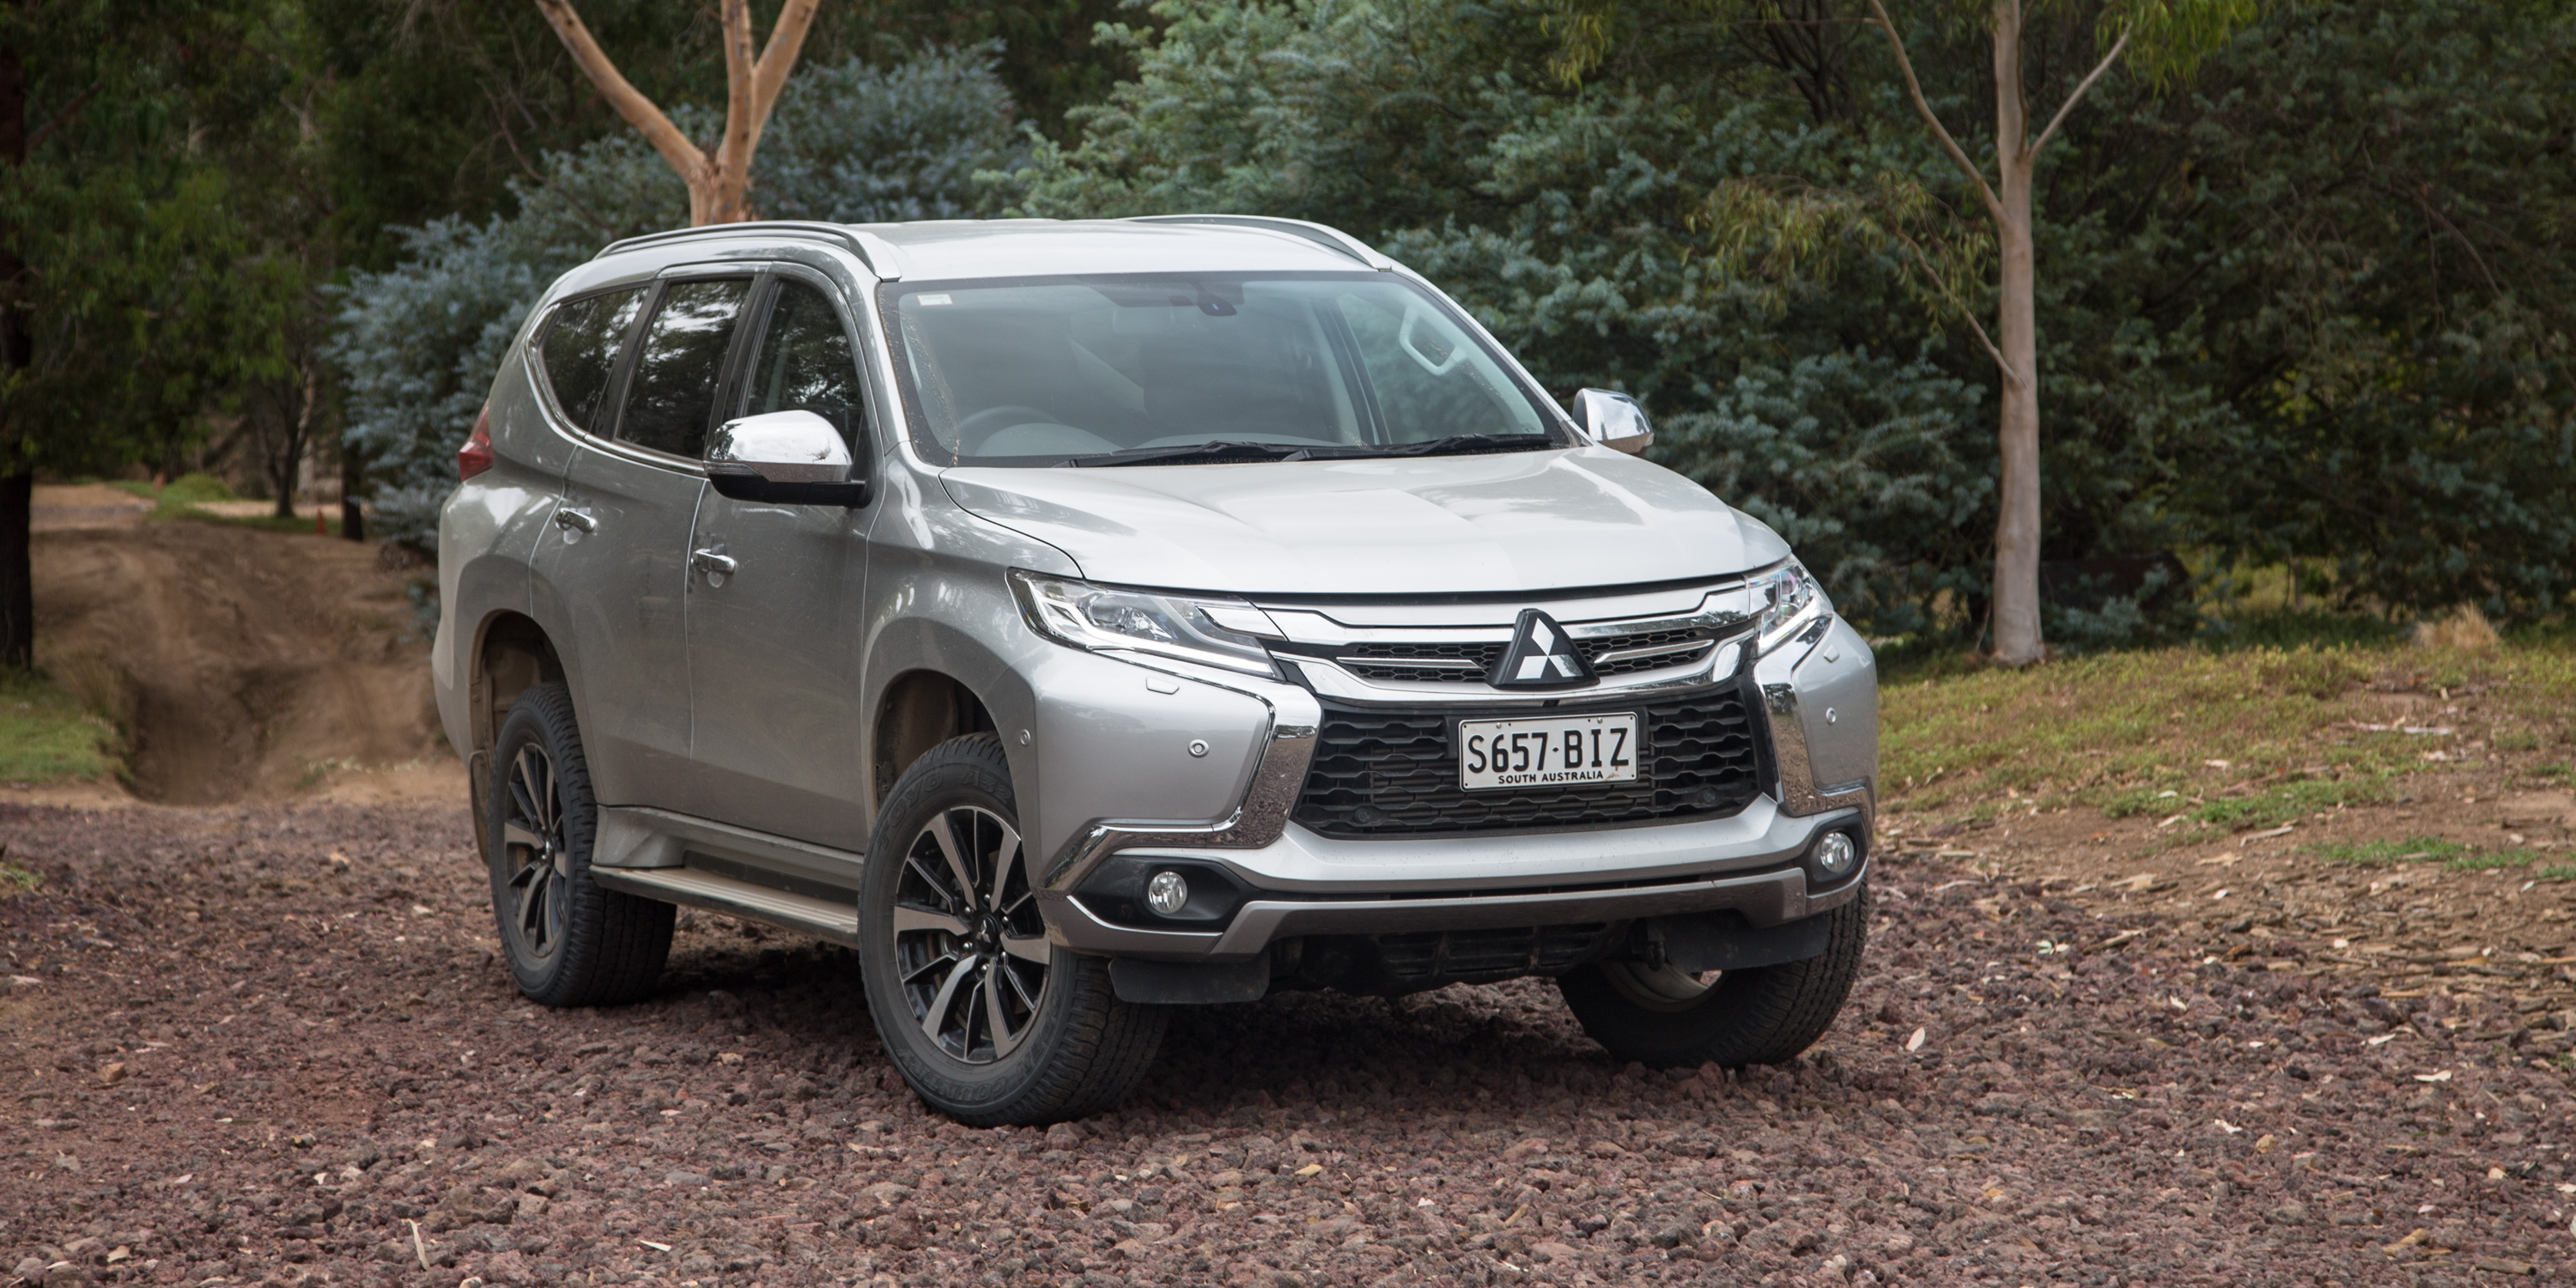 2016 Mitsubishi Pajero Sport Exceed Review Caradvice